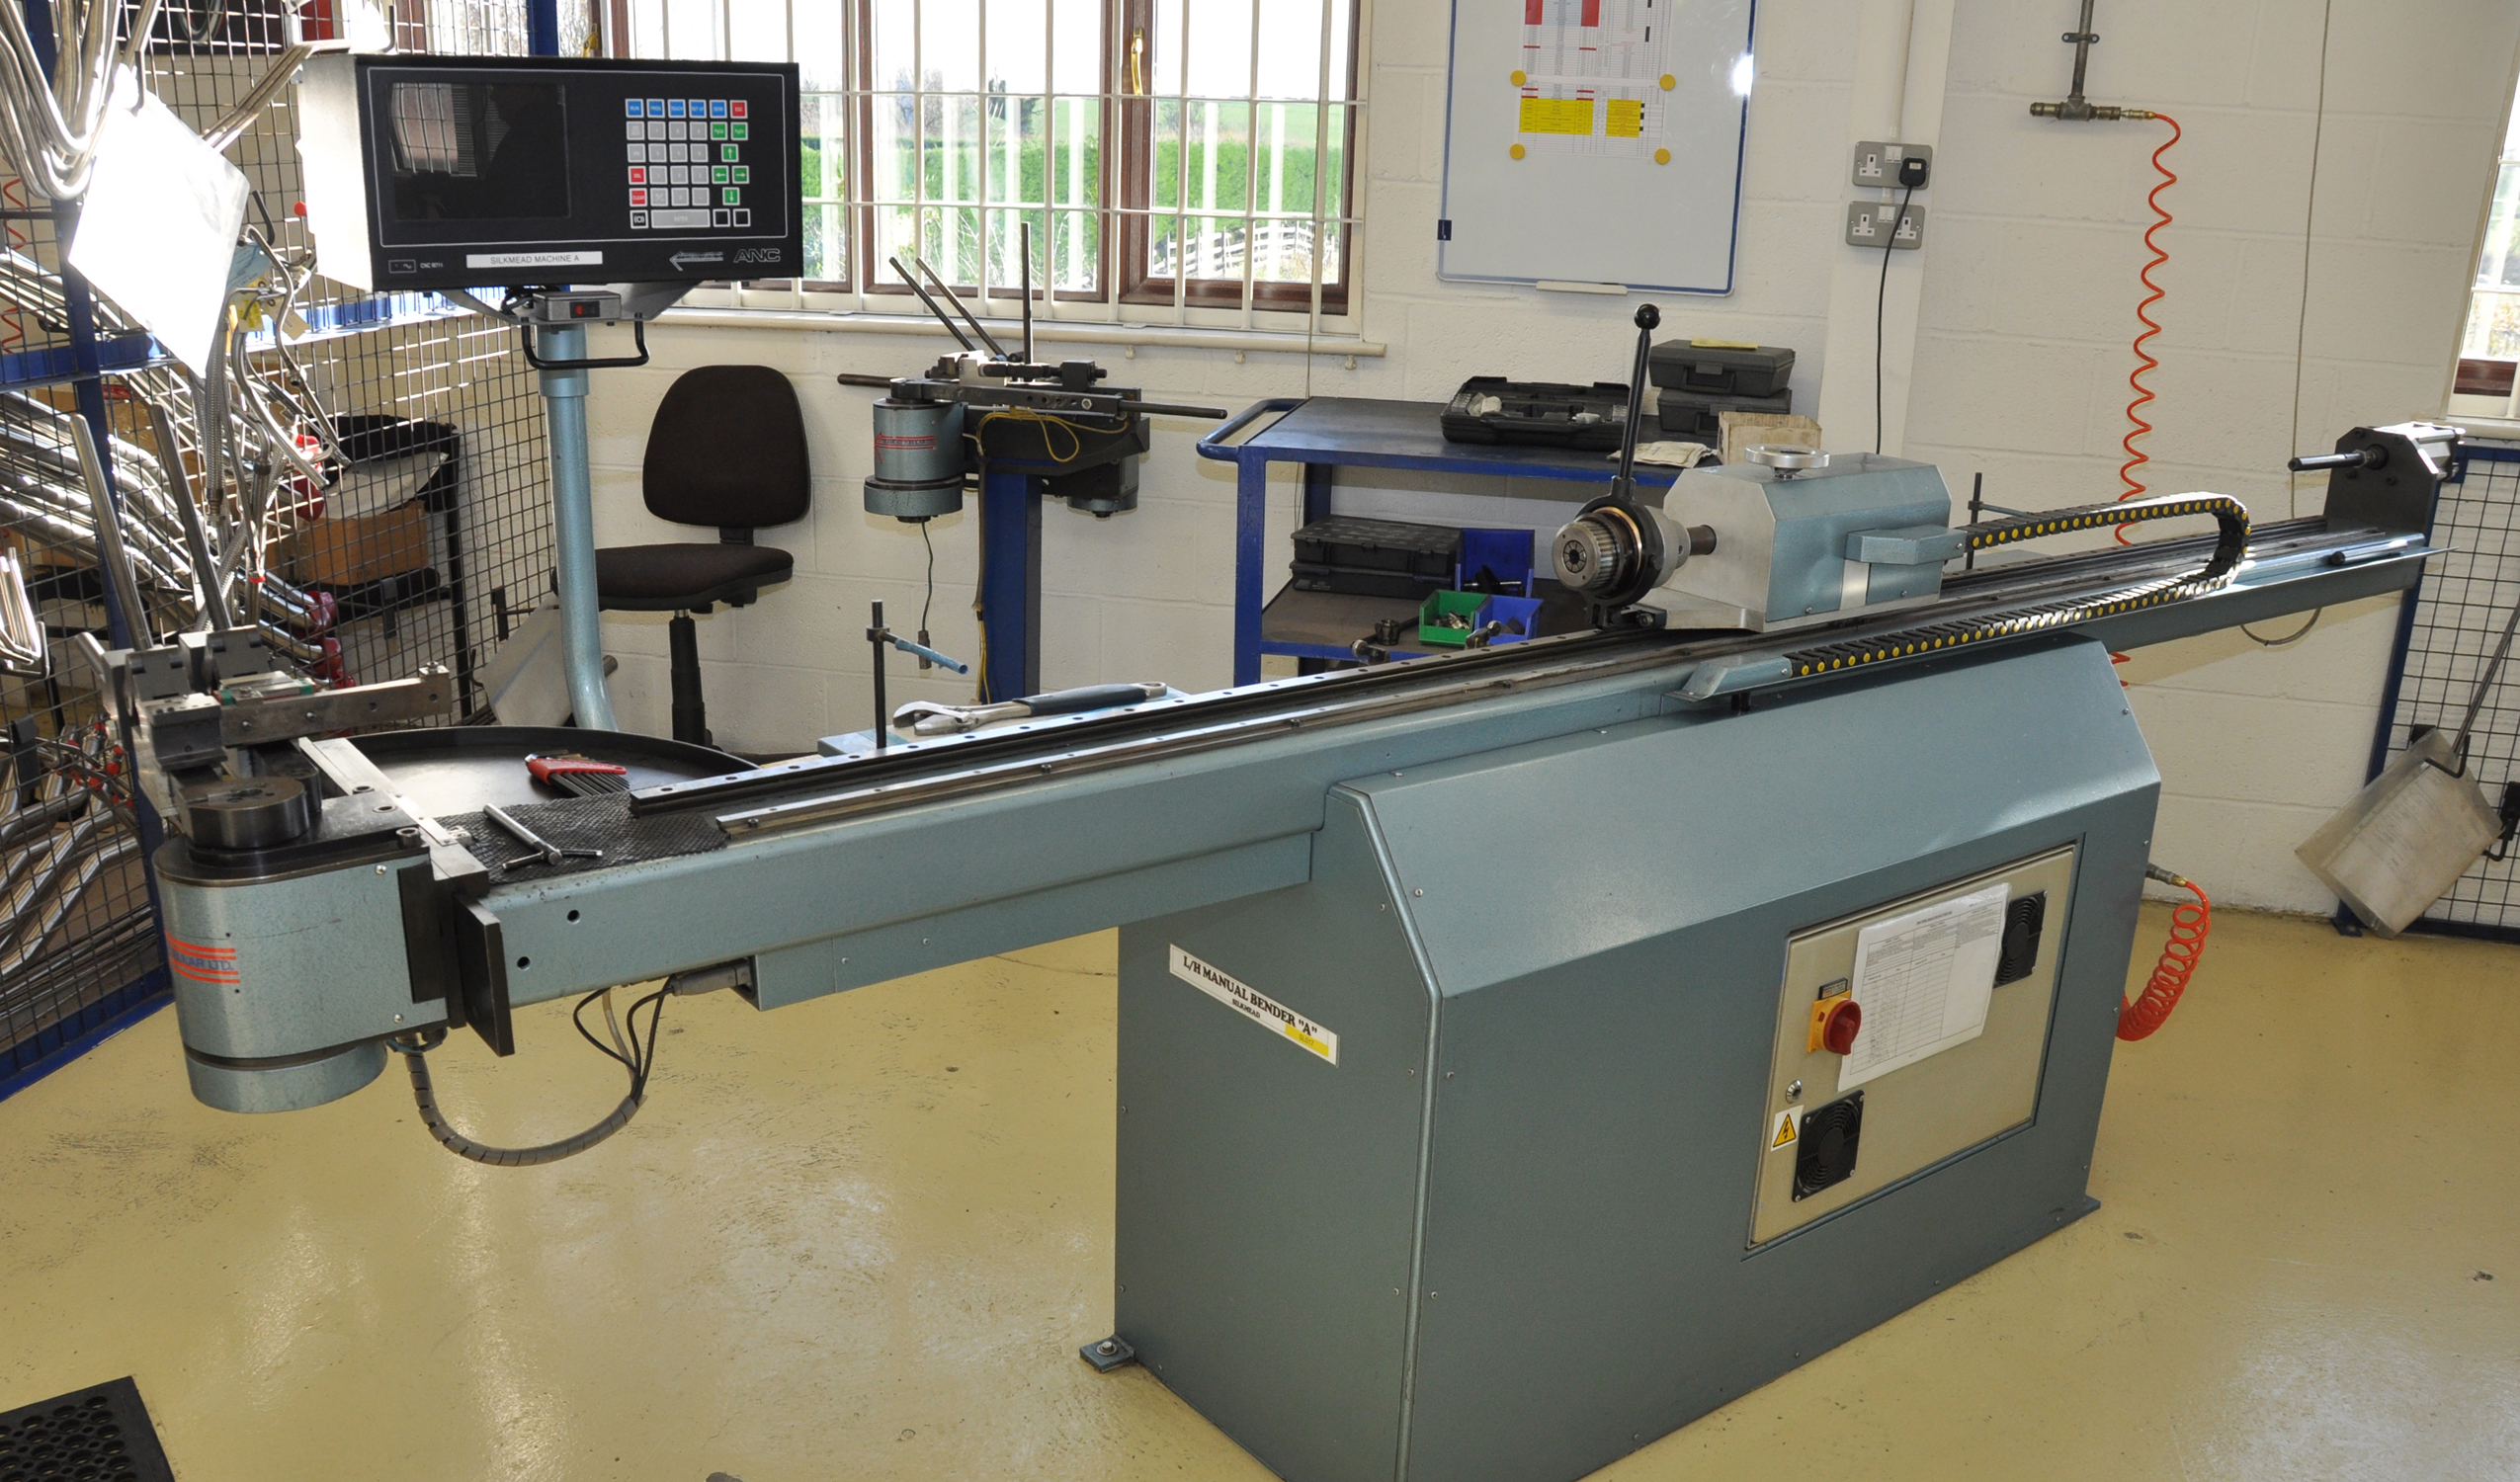 Tube bending leader adds new low cost entry point machine for Unison house